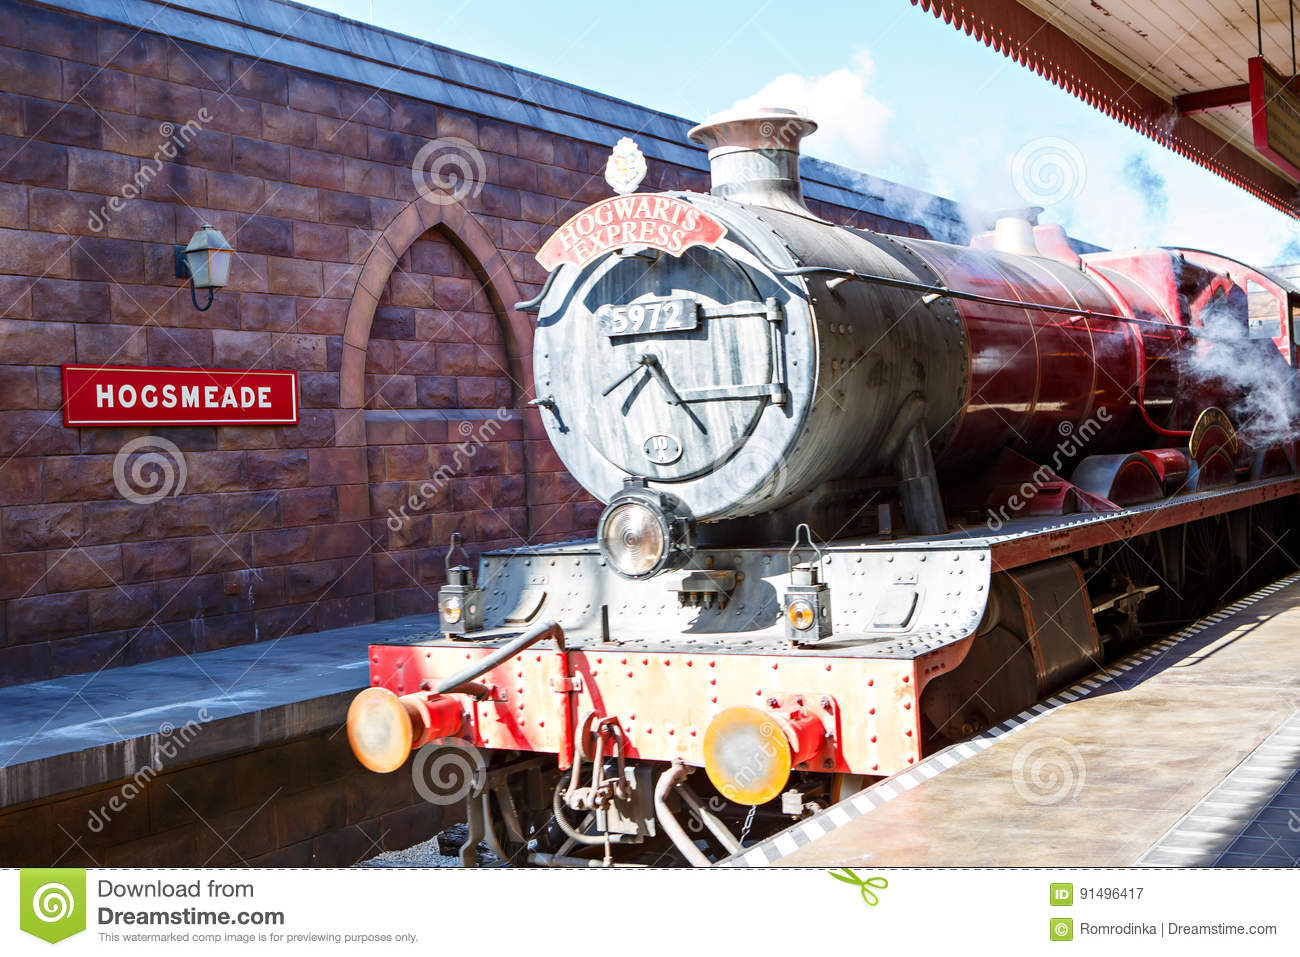 ORLANDO,FL-APRIL 19 2016: Hogsmead and Hogwarts Express train, home to Harry Potter and the Forbidden Journey attraction